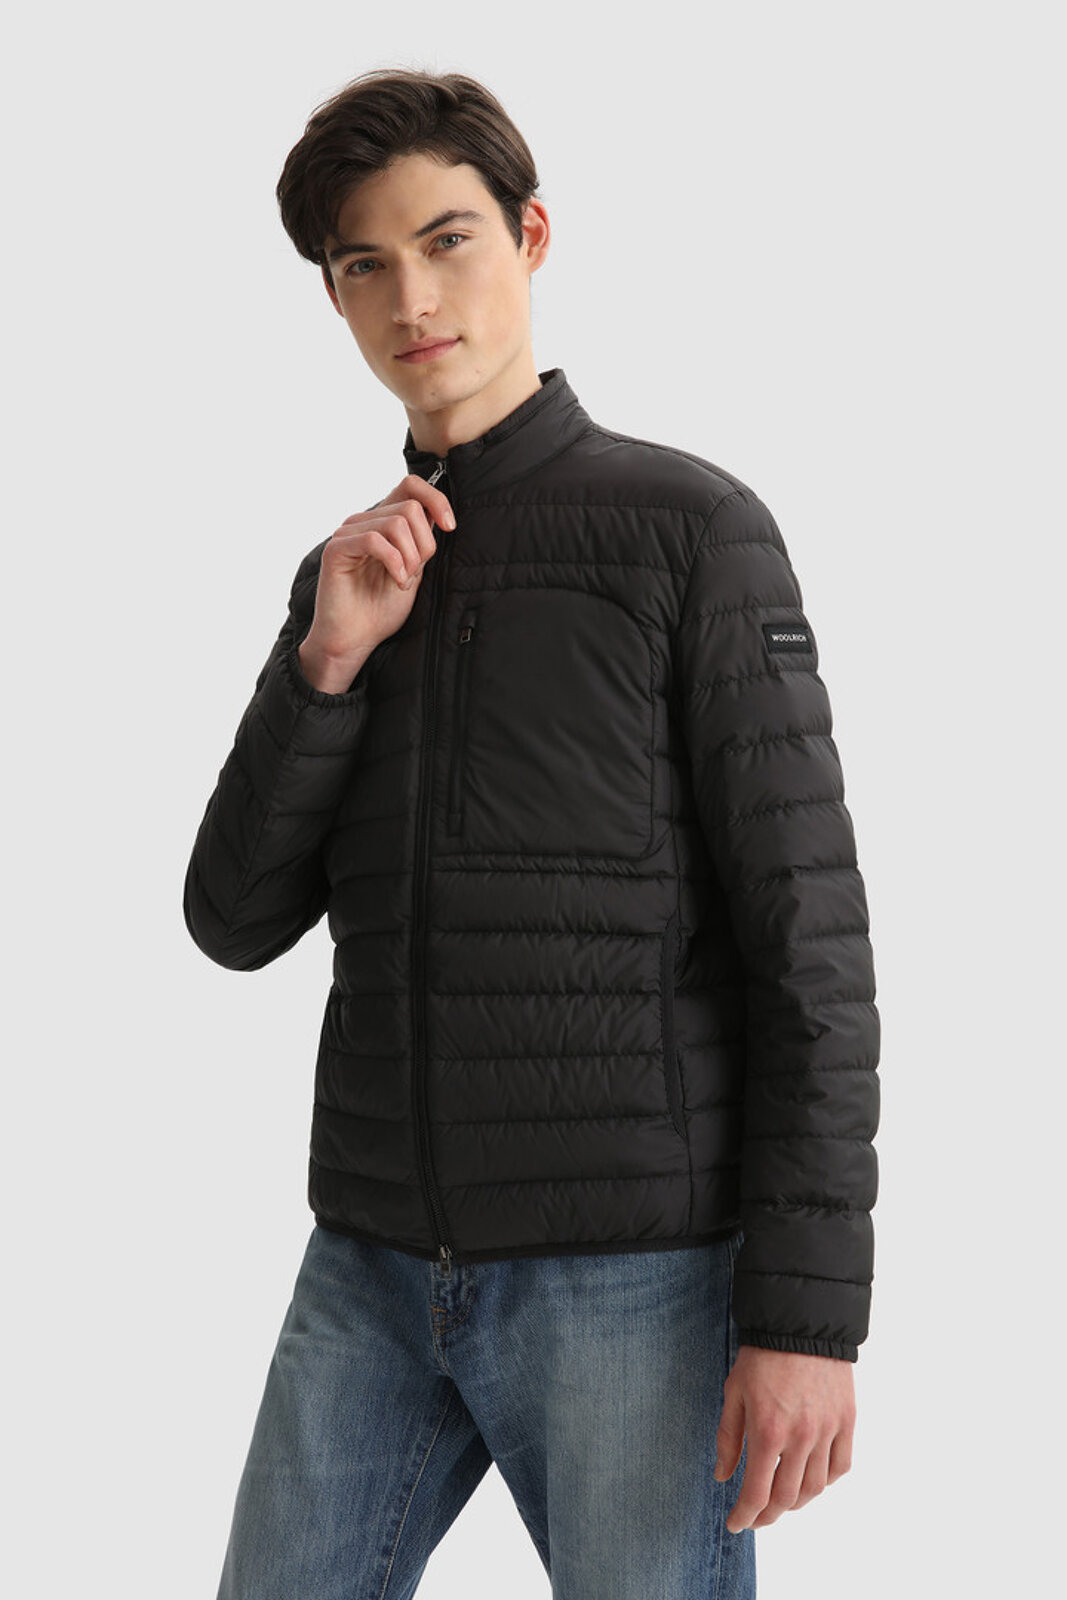 Giacca Bering Trapuntata - Woolrich